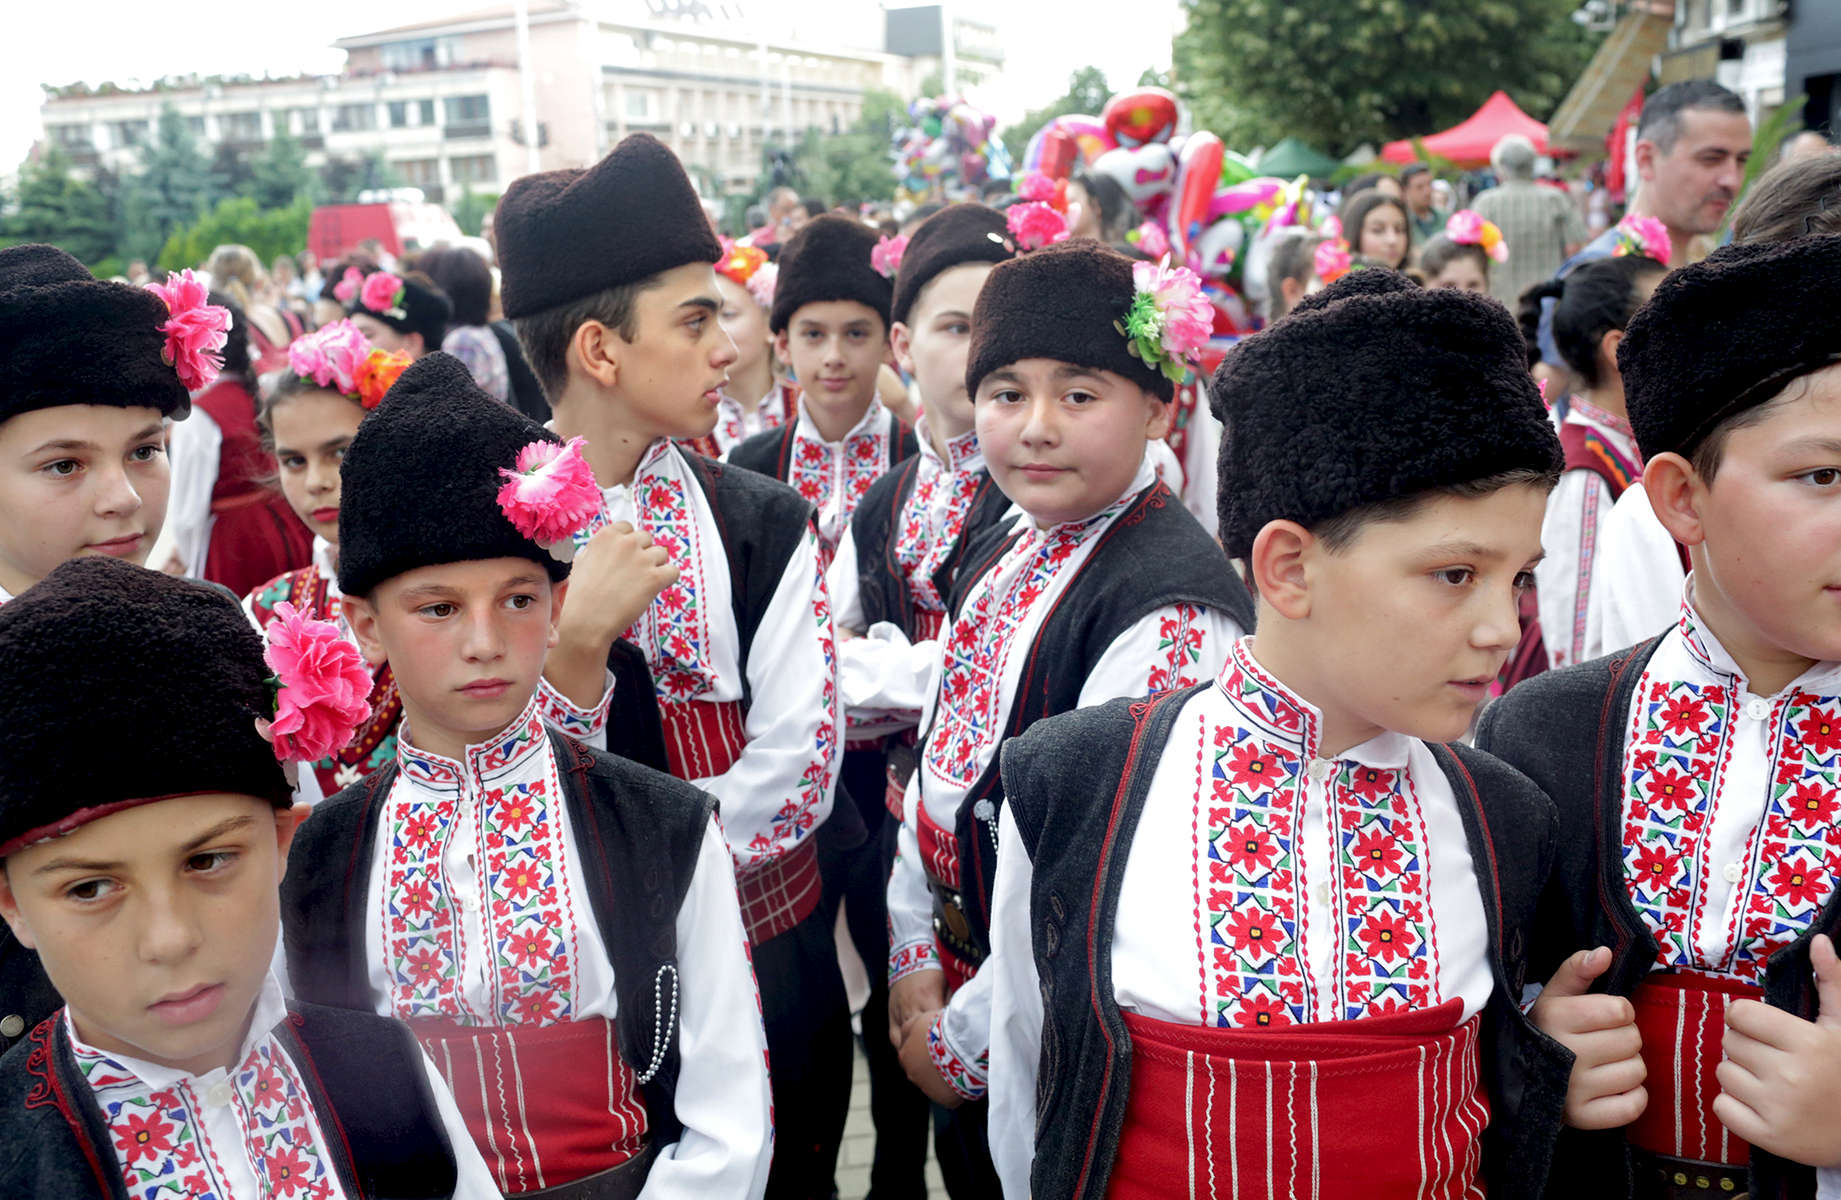 Members of the folk ensemble Iskra from Kazanlak, Bulgaria, prepare to perform on stage during an International Folklore Festival on June 02, 2018, which is a part of the Rose Festival in Kazanlak, Bulgaria. The festival, situated in the Rose Valley of Bulgaria, celebrated 115 years in 2018.  Photo by: Yana Paskova for National Geographic Traveler